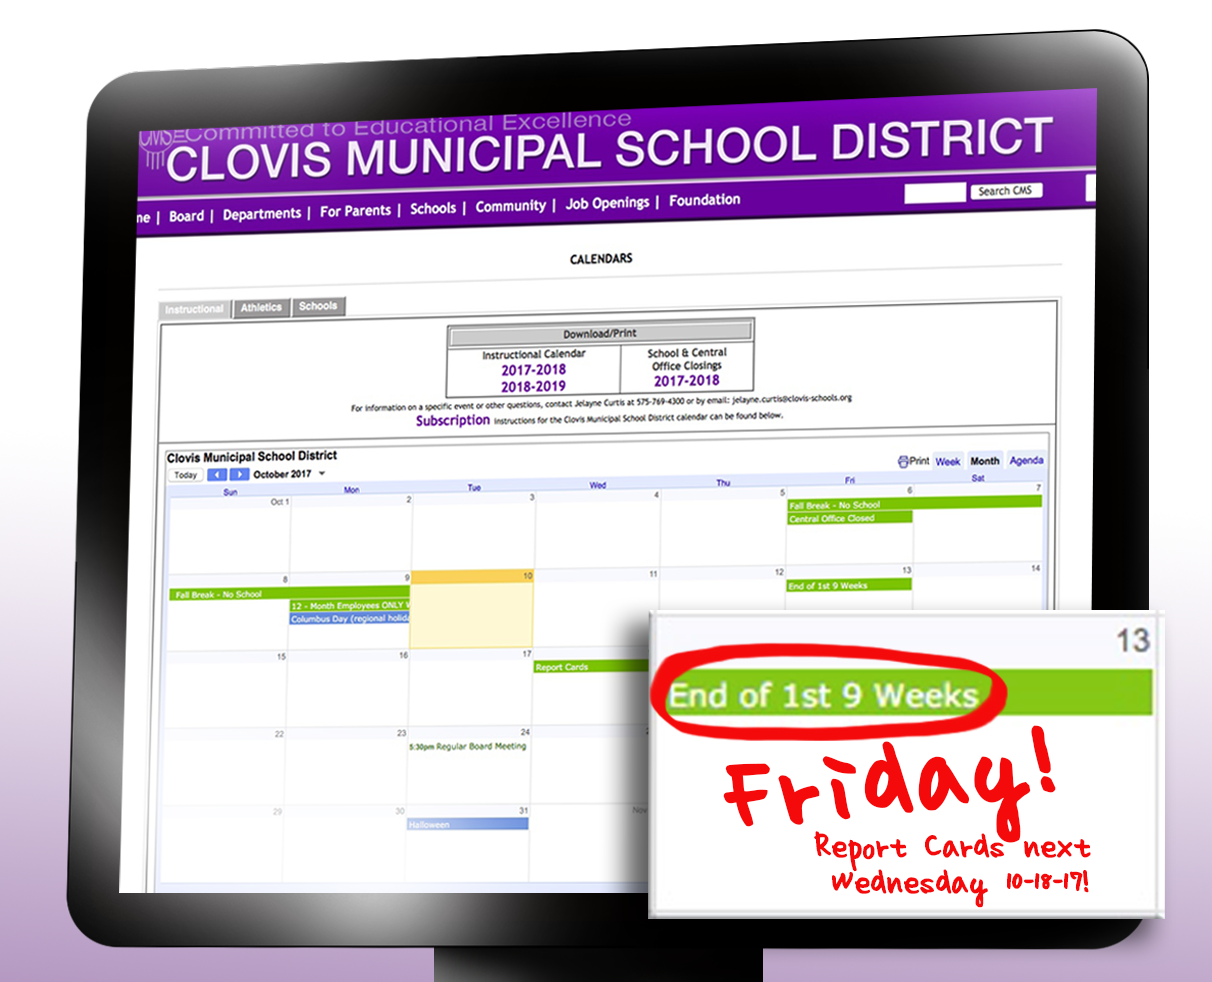 Image of a computer screen showing the CMS Instructional calendar with a reminder note that the 1st nine weeks is ending